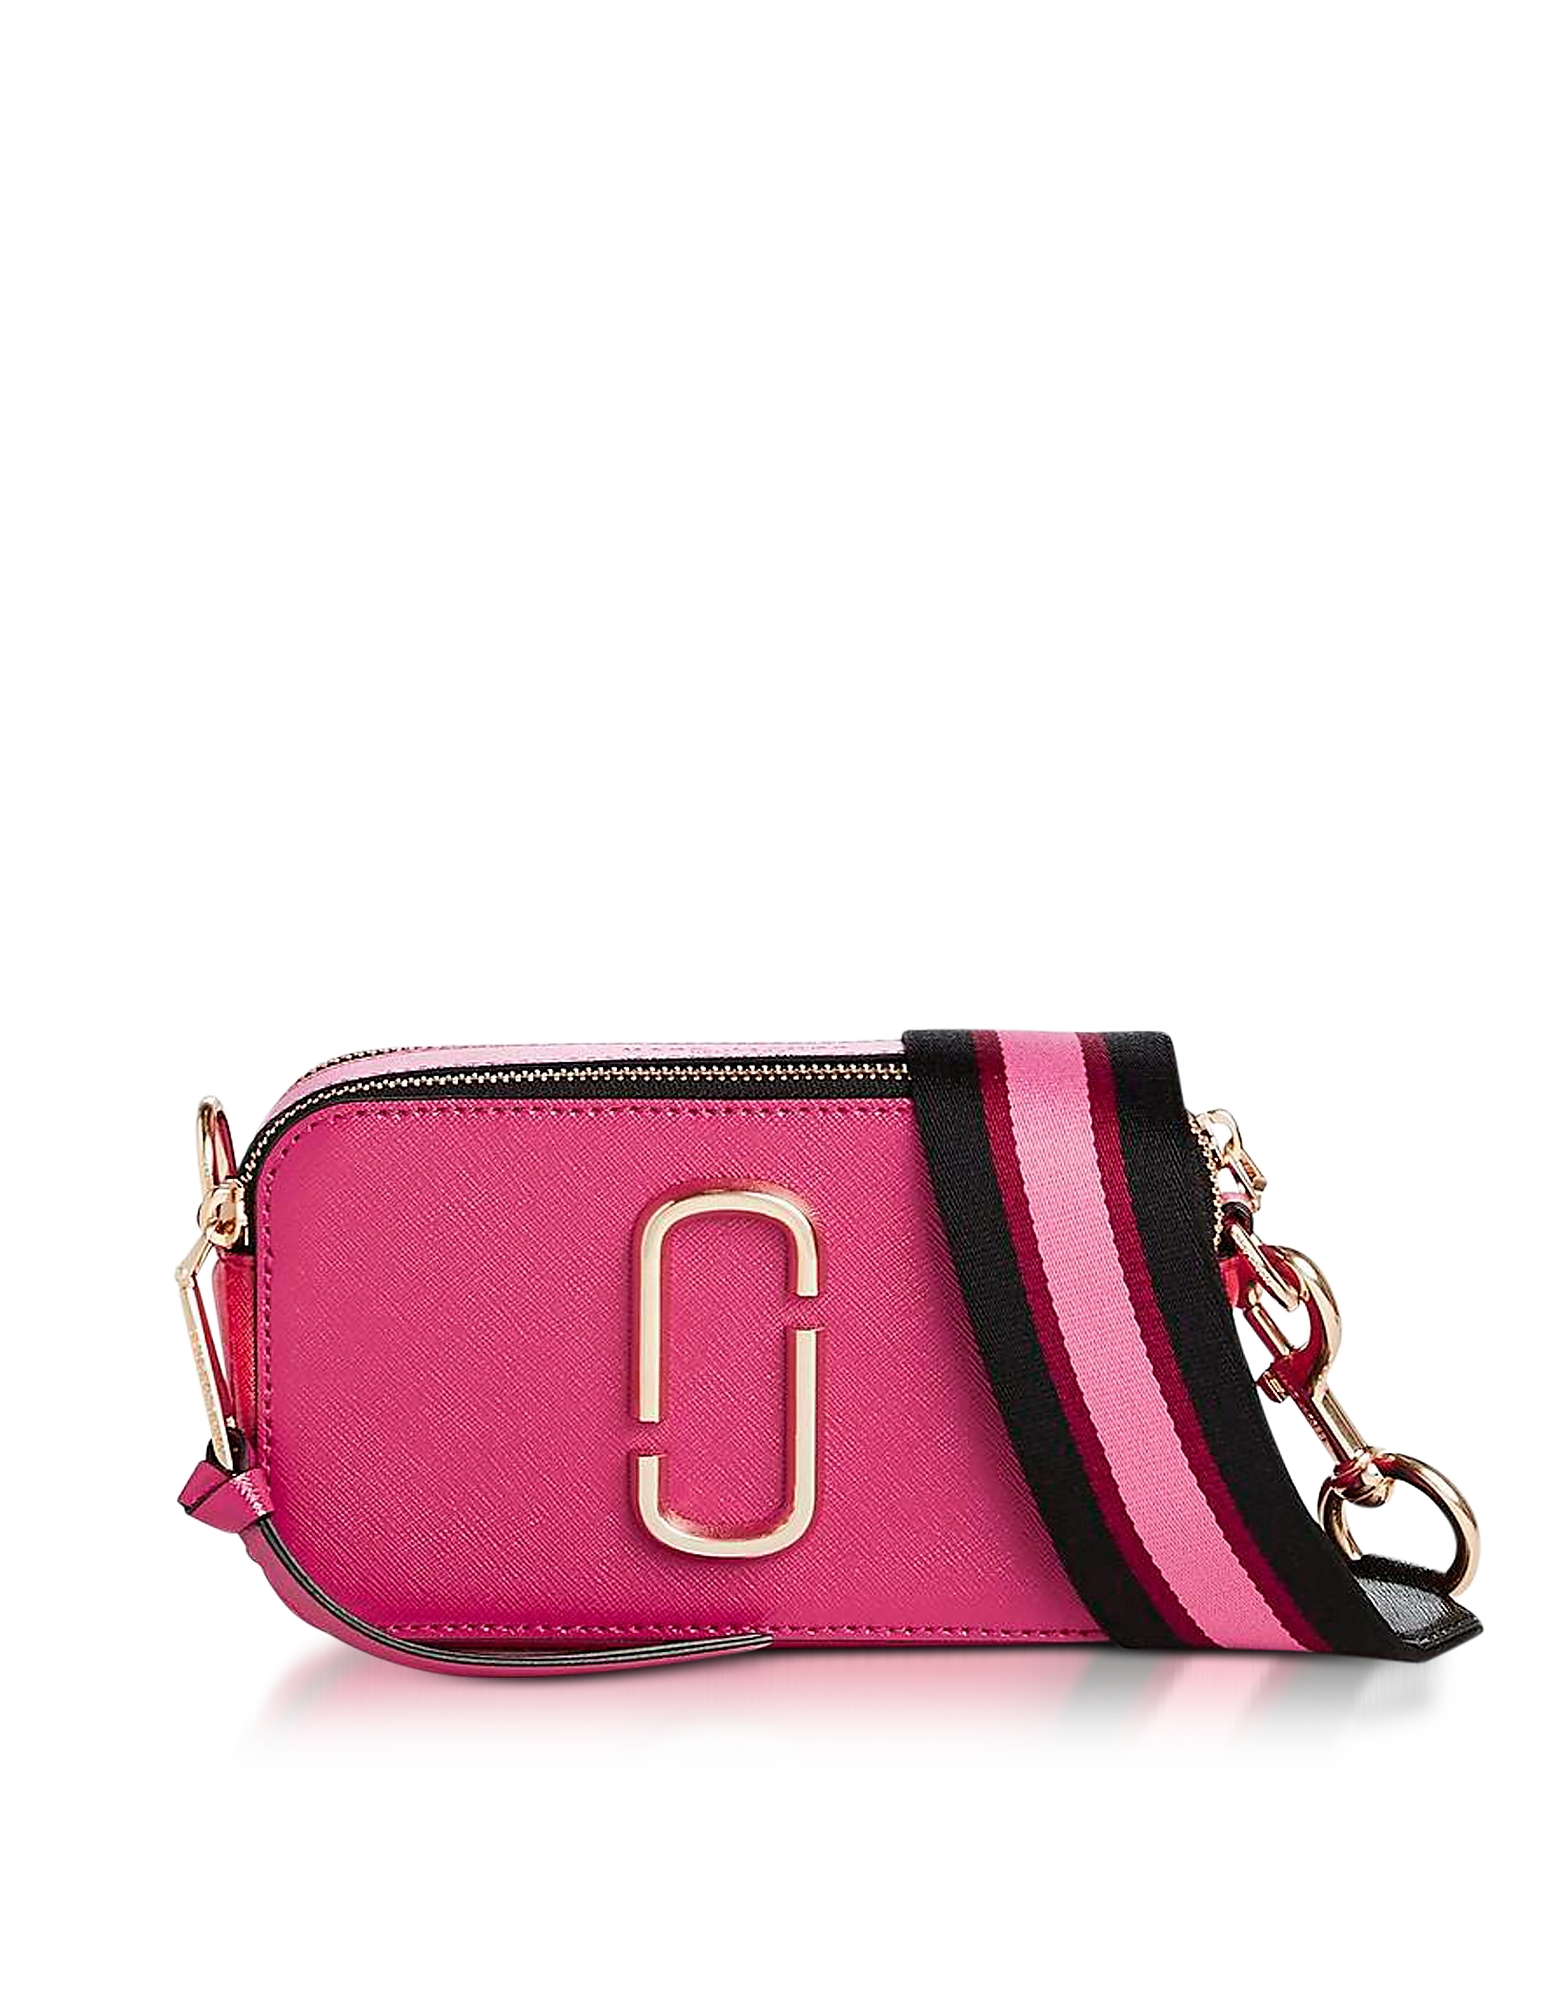 Marc Jacobs Handbags, Hibiscus Multi Snapshot Camera Bag